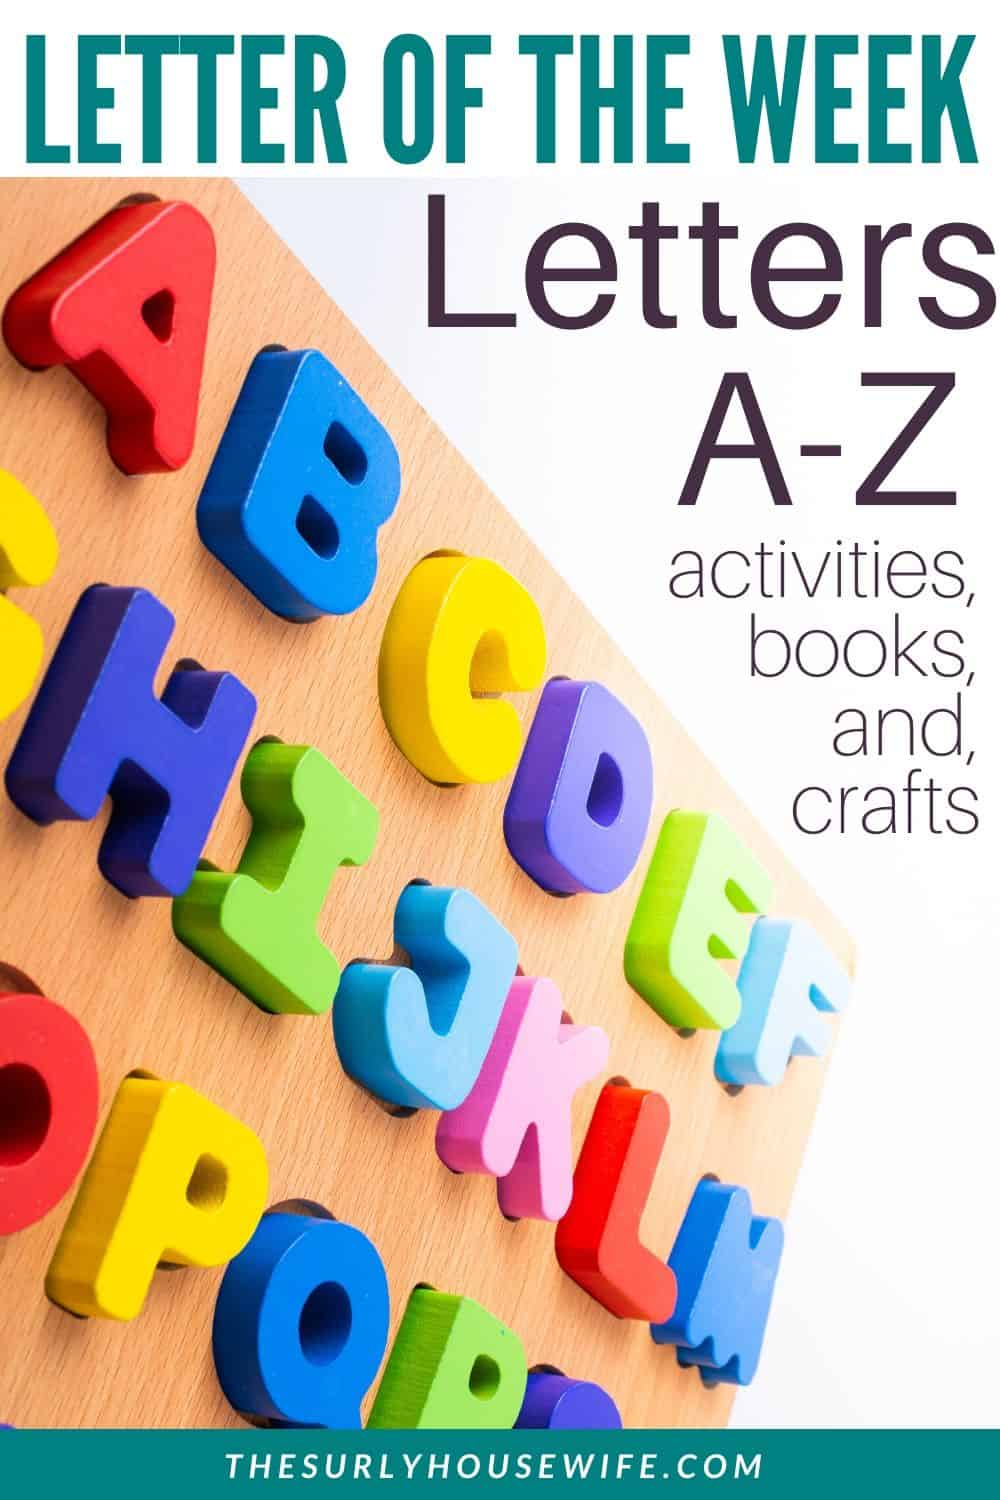 A Letter of the Week preschool curriculum is hands-on way to teach your child the alphabet. It includes activities, books, crafts, worksheets, sensory play, and more. Click here to learn about this free preschool curriculum that works for toddlers as well as kindergarten